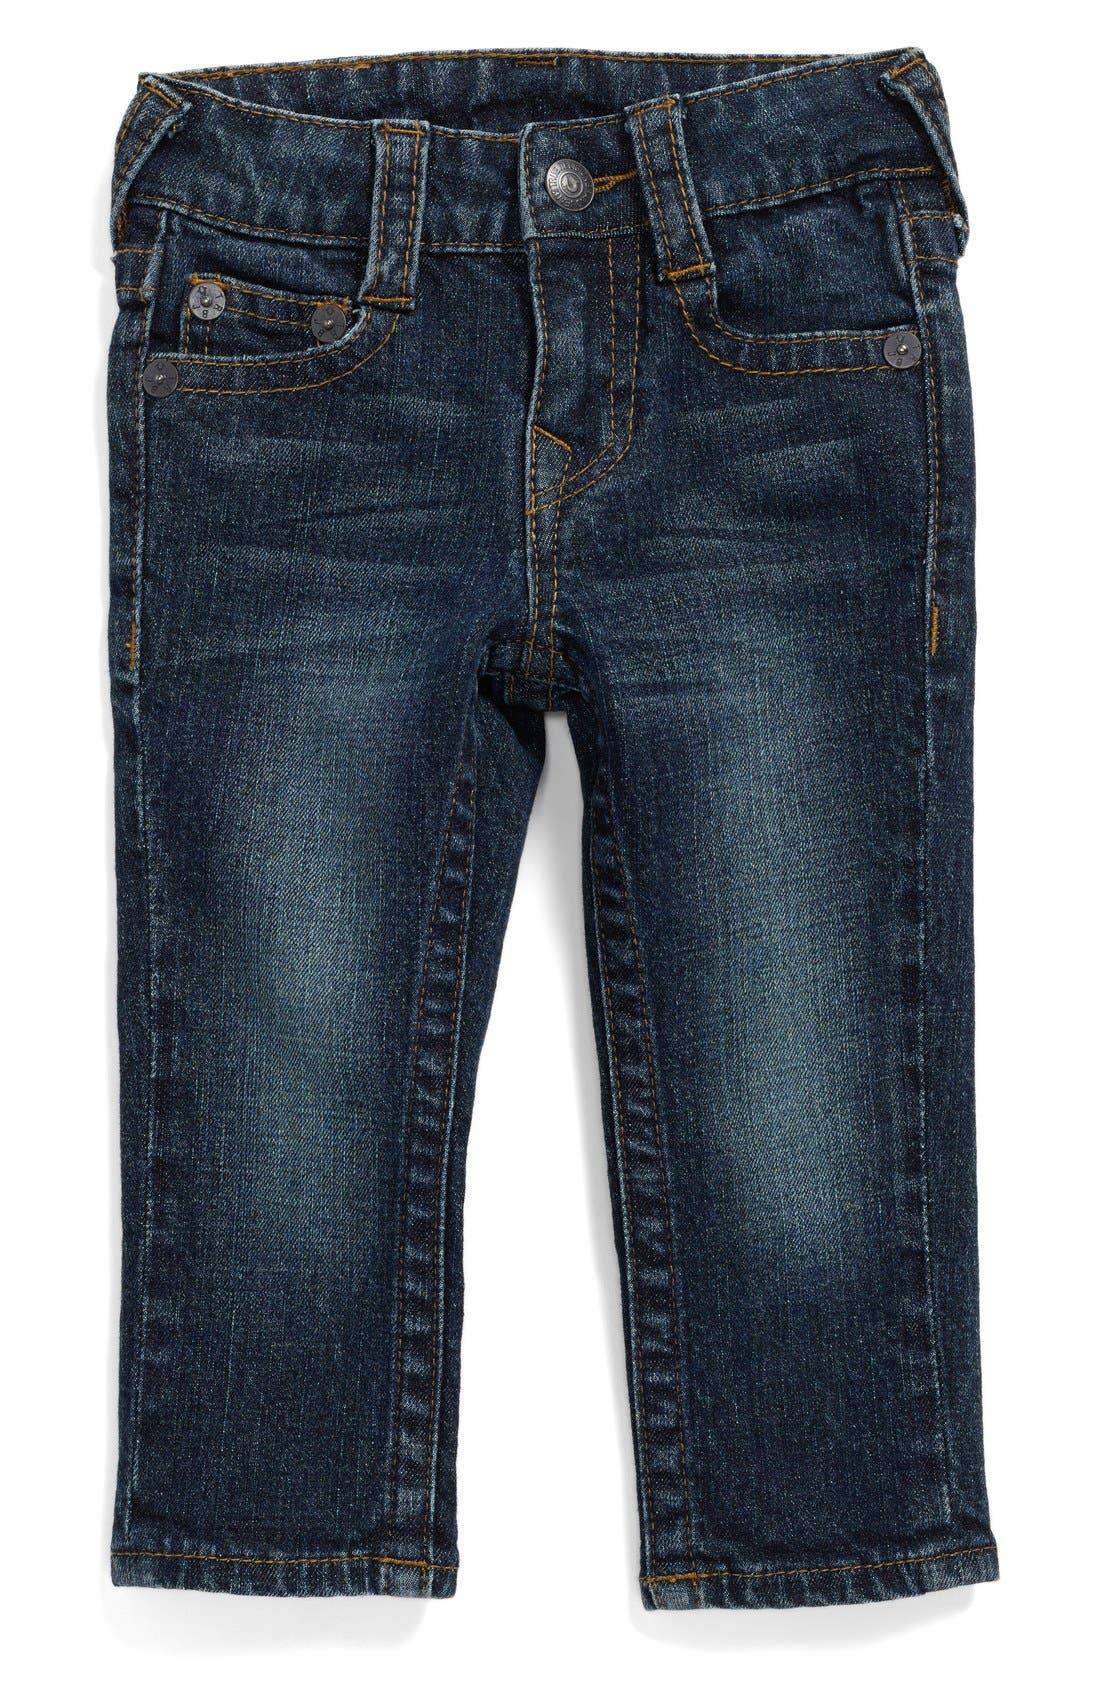 Main Image - True Religion Brand Jeans 'Geno' Relaxed Slim Fit Classic Jeans (Baby Boys) (Online Exclusive)